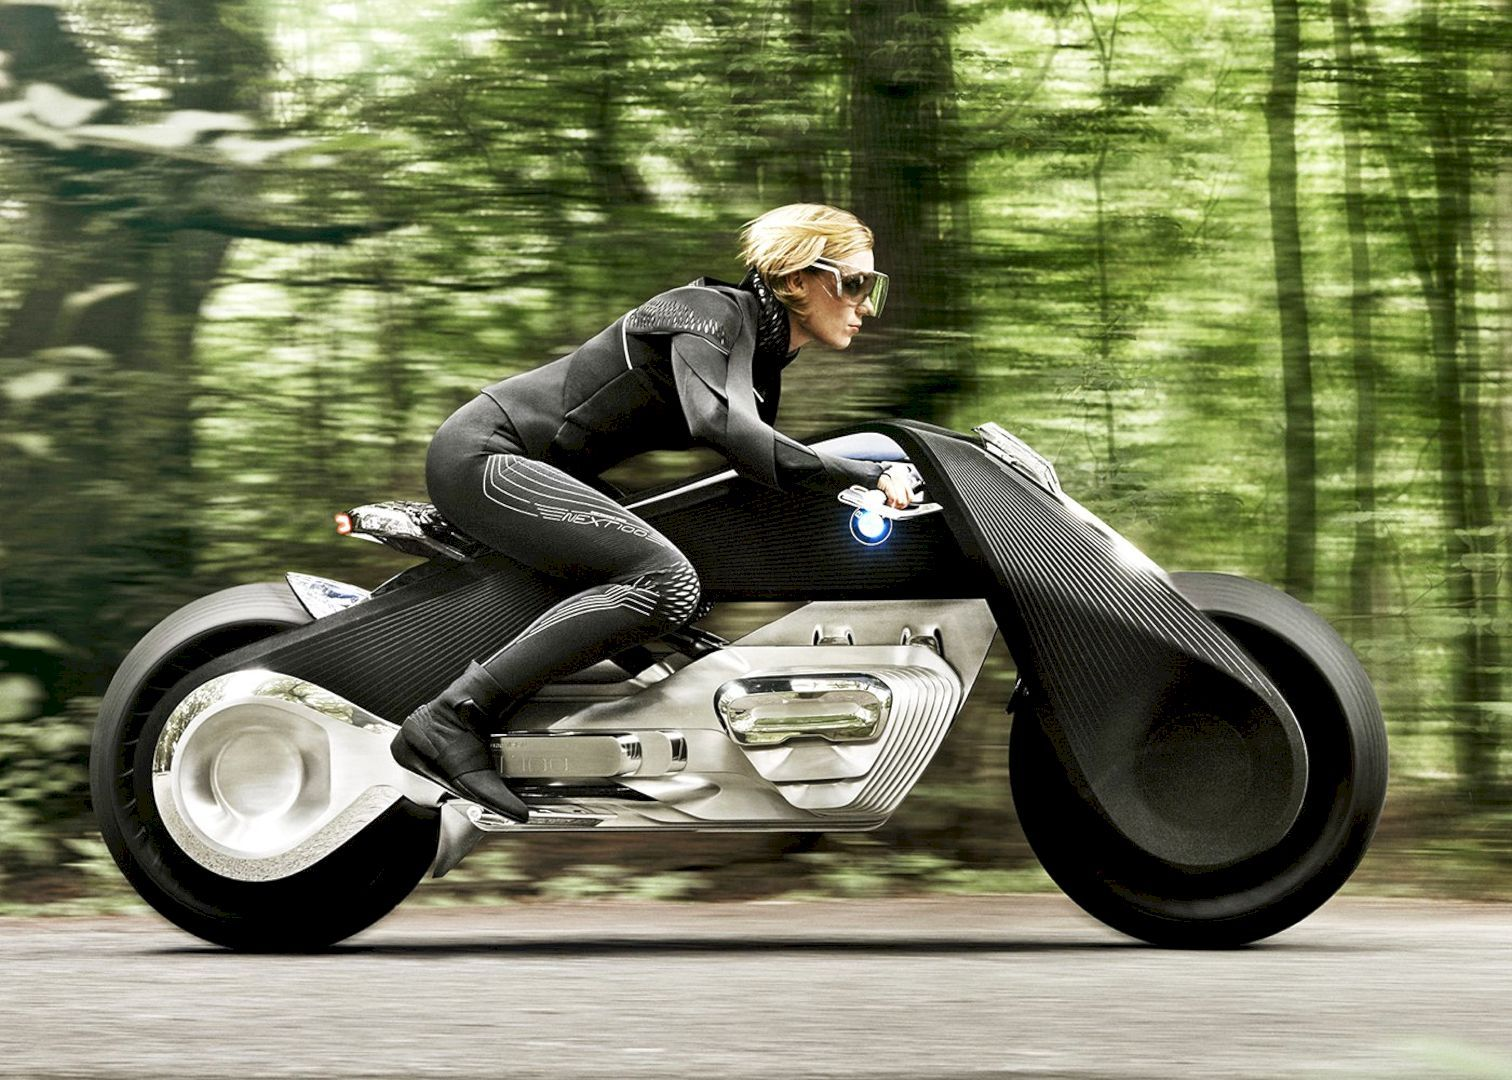 Best Motorcycle Design Ideas On Pinterest Concept - Car sign with namesbikes and cars popular car symbols entertaining ideas